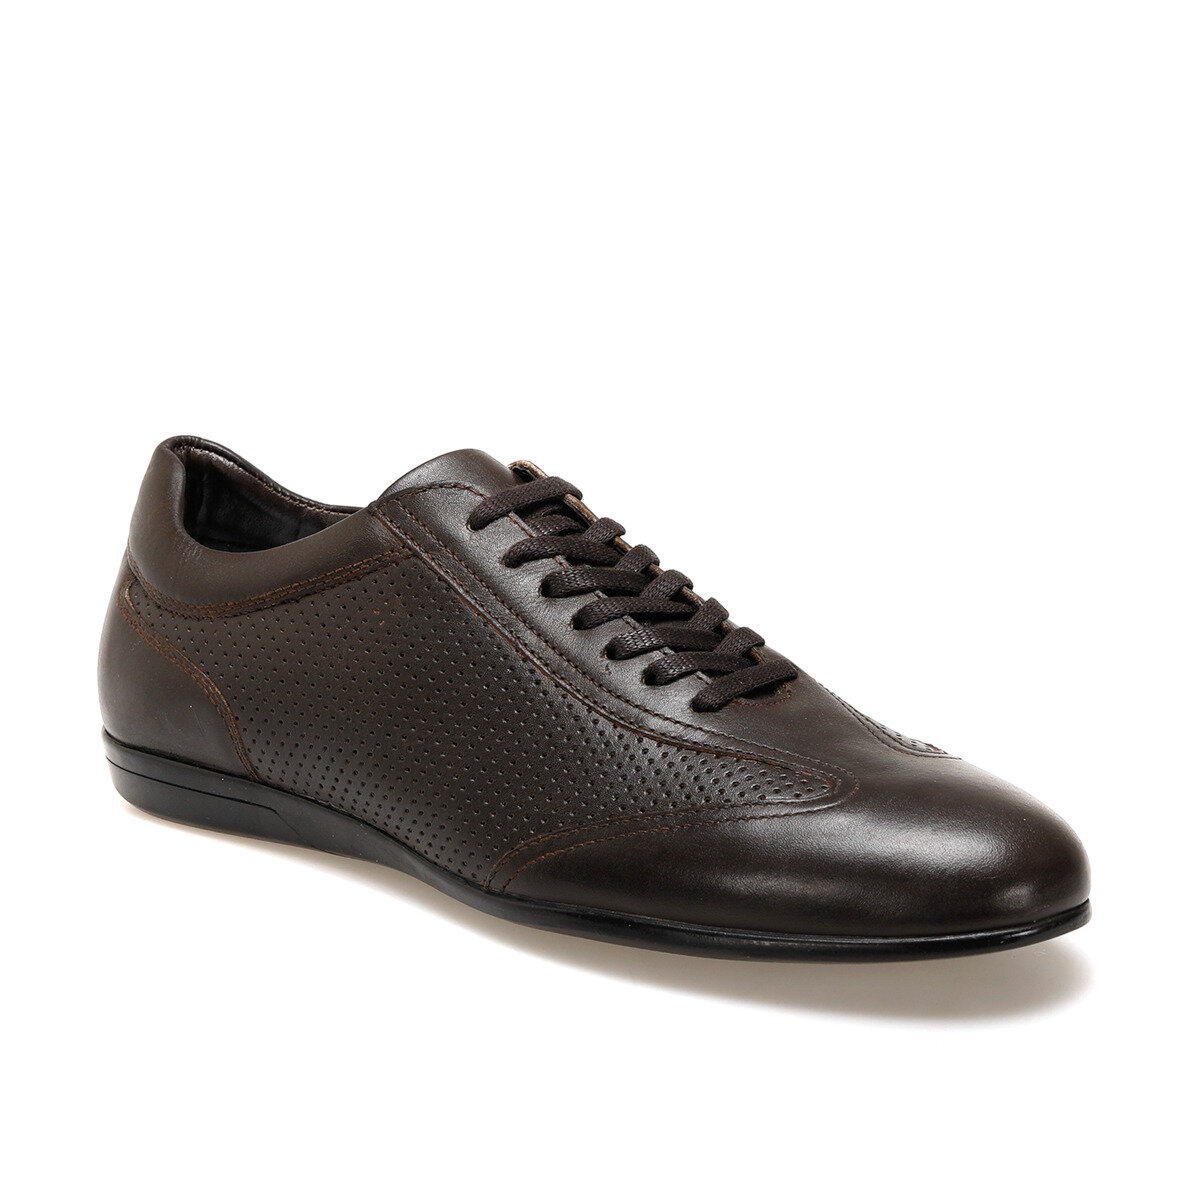 FLO GBS21 Black Men Casual Shoes Oxide